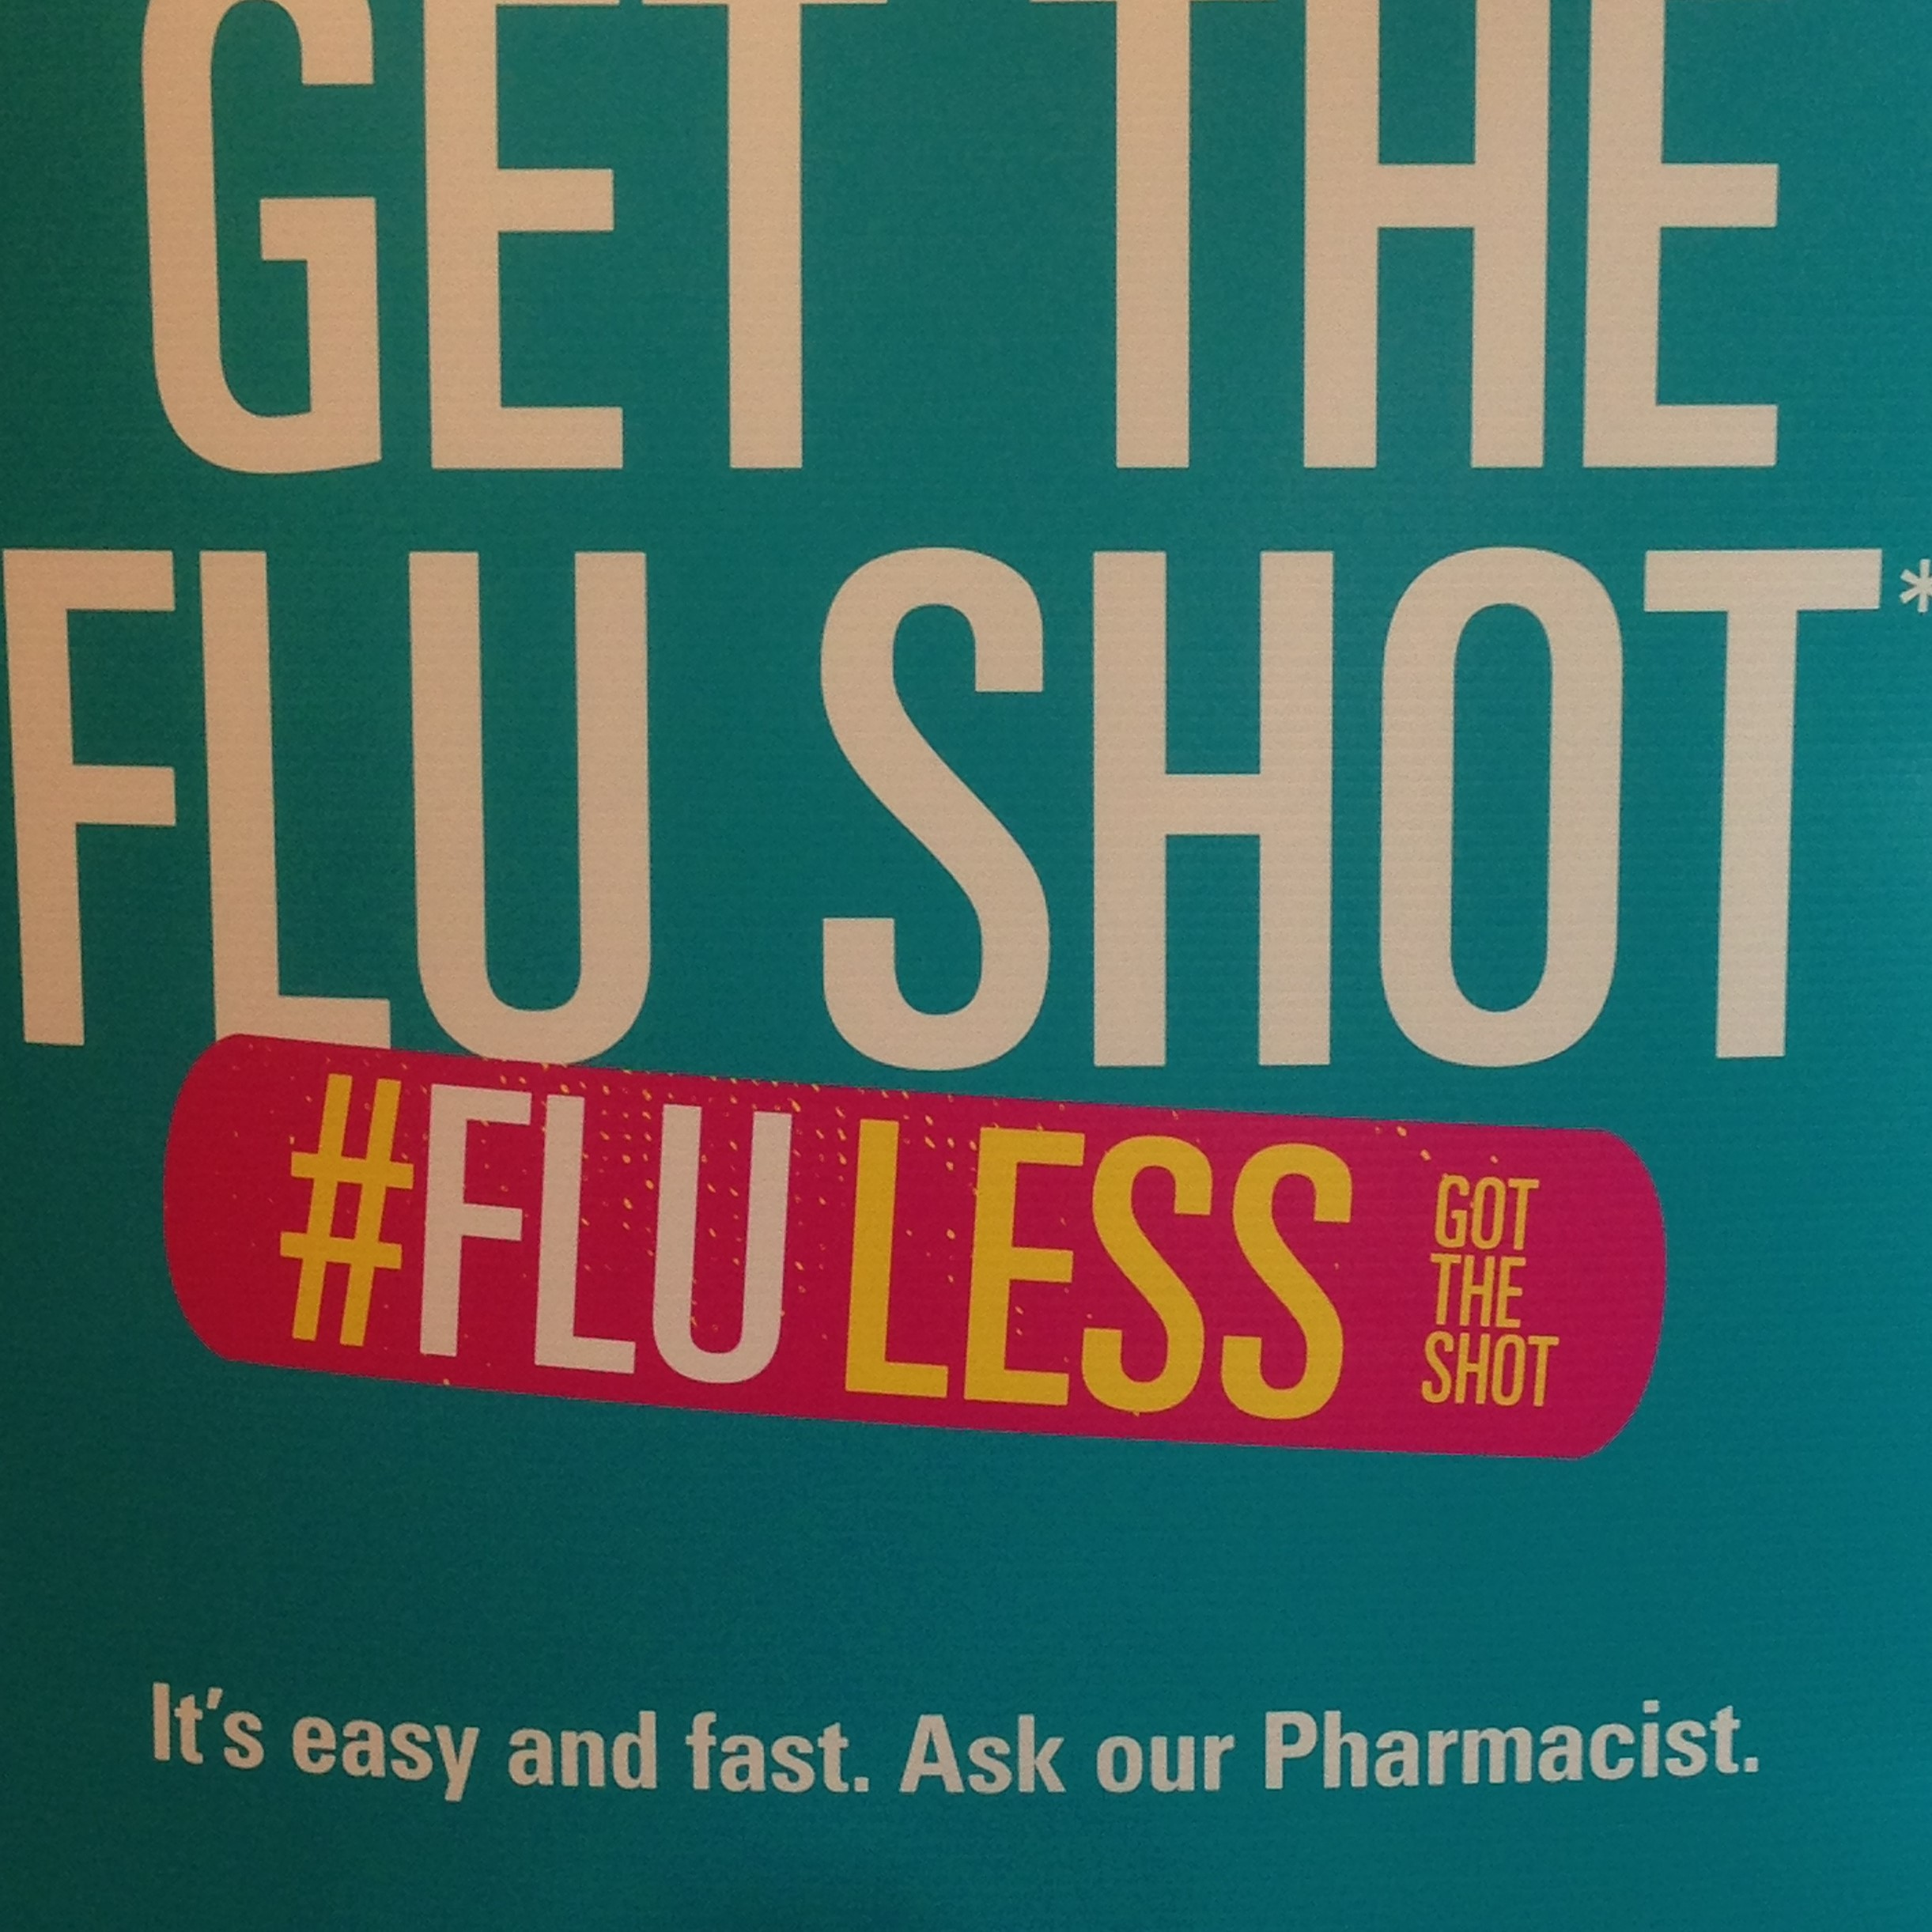 flu shot ineffective for children, adults, pregnant women and seniors